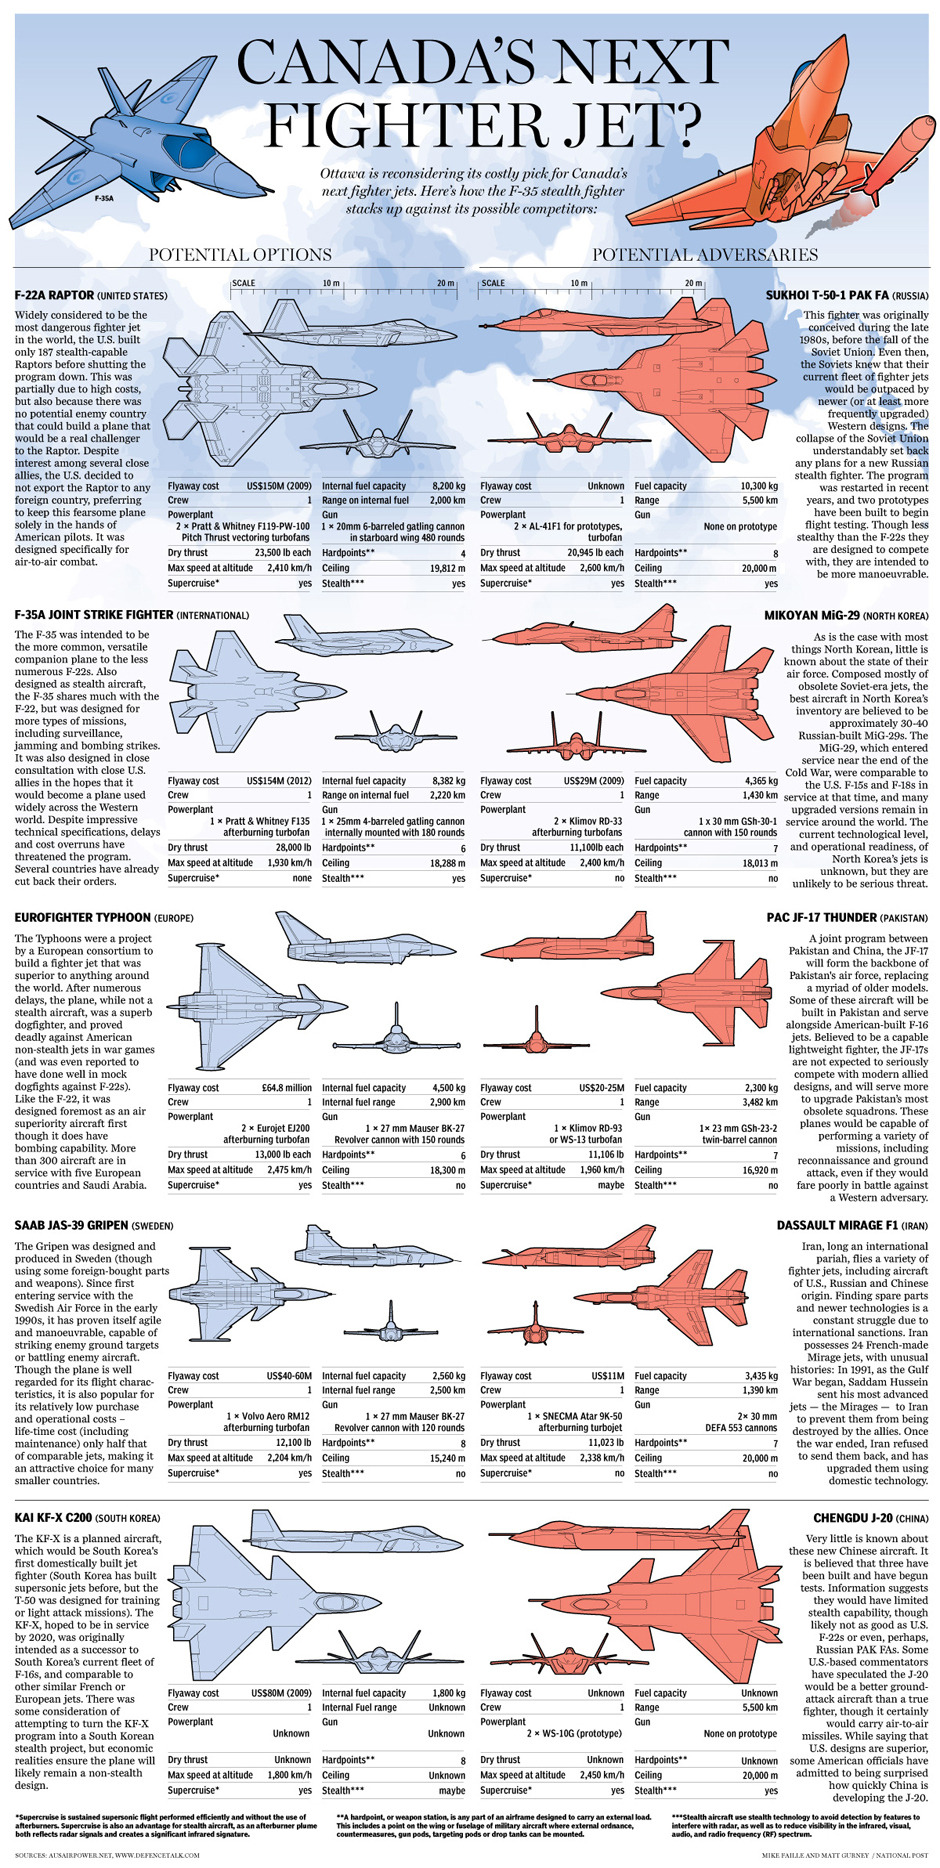 Graphic: Canada's fighter jet options and potential adversaries in the skyOttawa is reconsidering its costly pick for Canada's next fighter jets. Here's how the F-35 stealth fighter stacks up against its possible competitors.